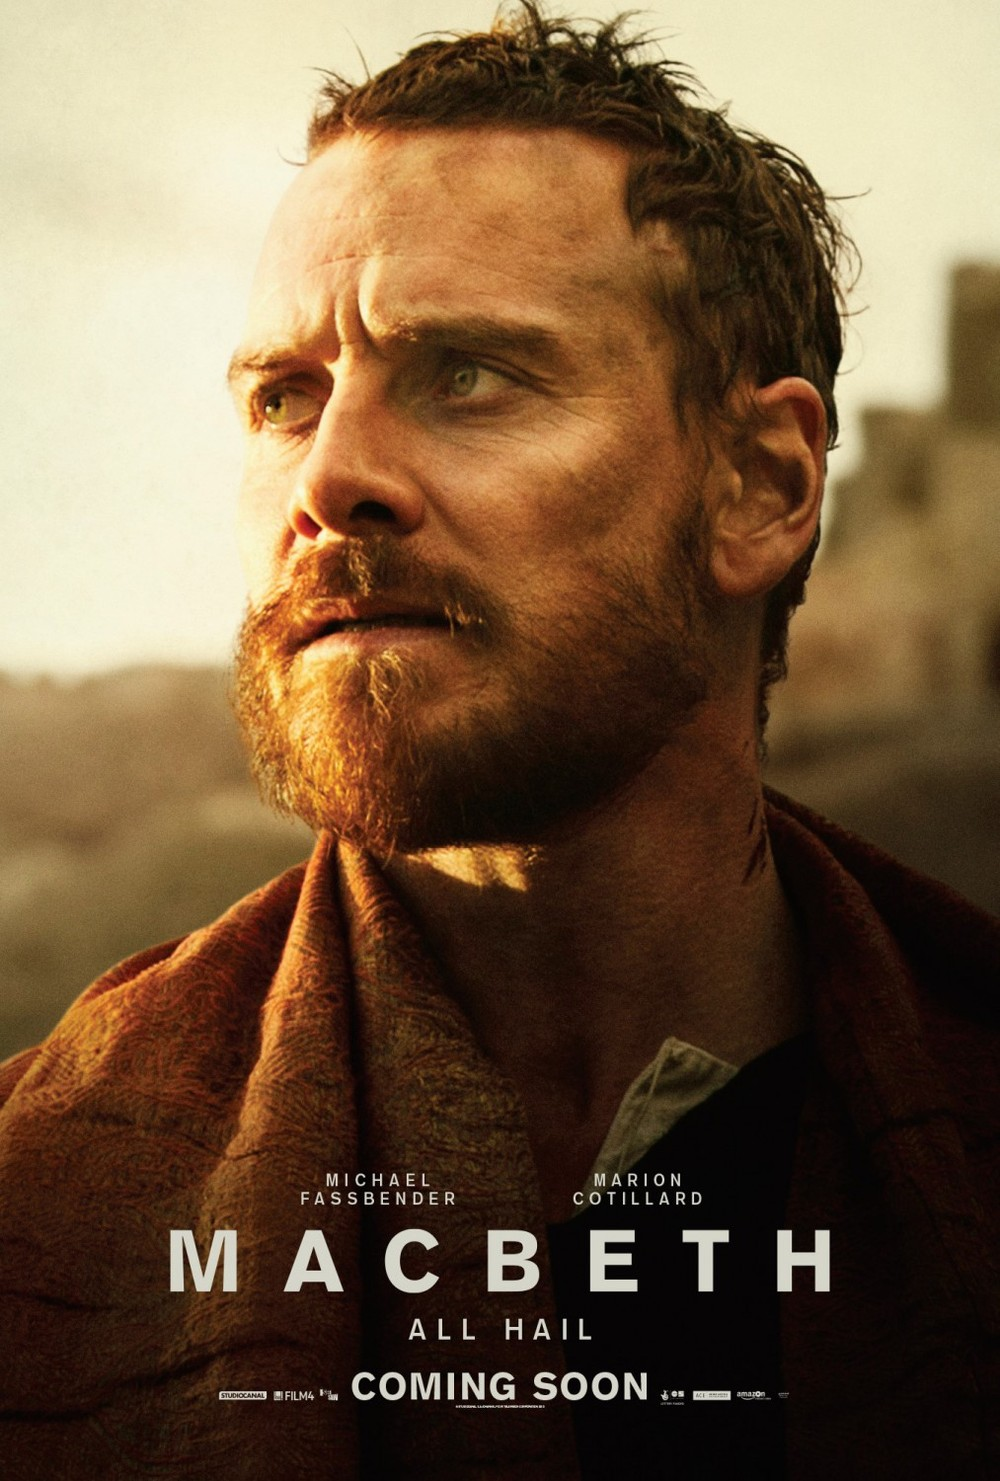 Macbeth DVD Release Date | Redbox, Netflix, iTunes, Amazon | 1000 x 1481 jpeg 274kB